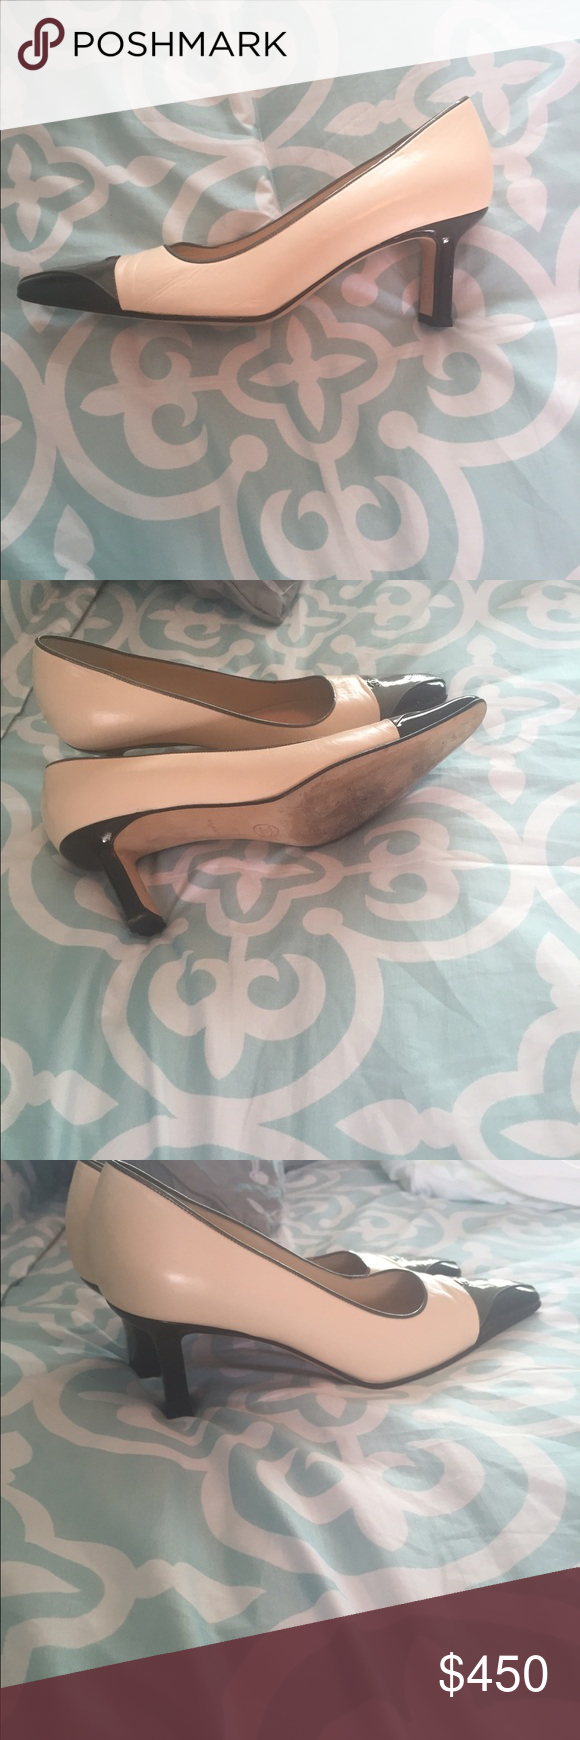 CHANNEL shoes excelent condition! CHANNEL shoes Tricolor like new! Authentic! CHANEL Shoes Heels